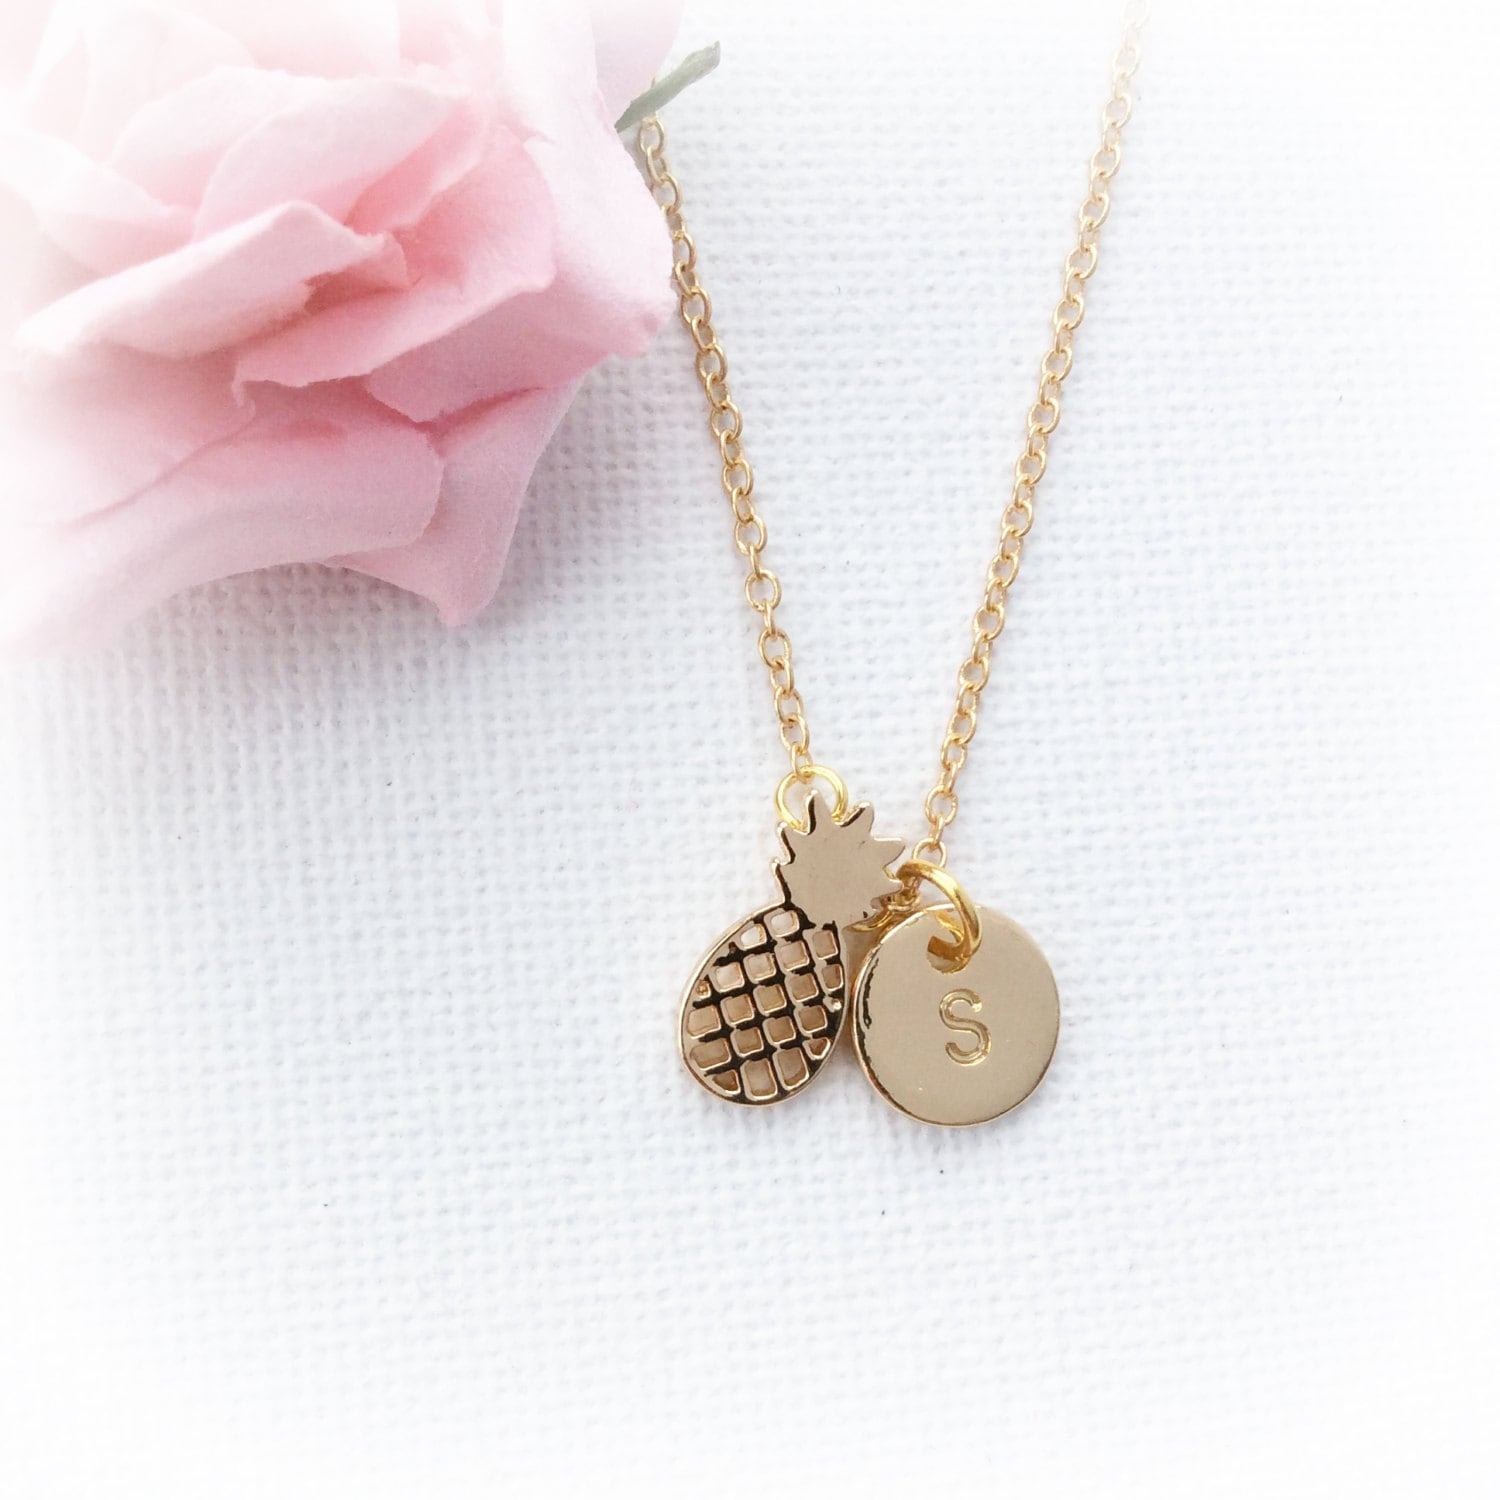 Gold pineapple Necklace pineapple necklace pineapple Jewellery boho jewellery beach jewellery pineapple personalized initial necklace